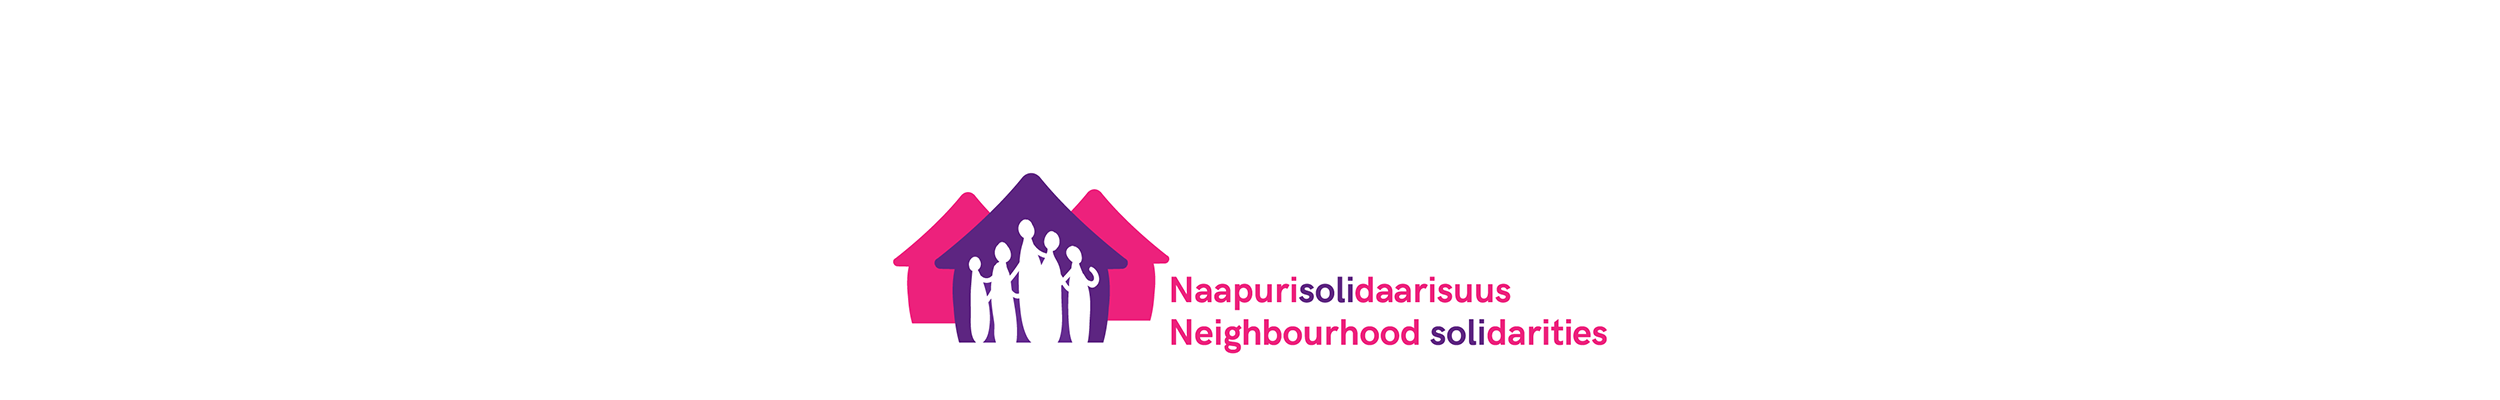 Naapurisolidaarisuus – Neighbourhood solidarities